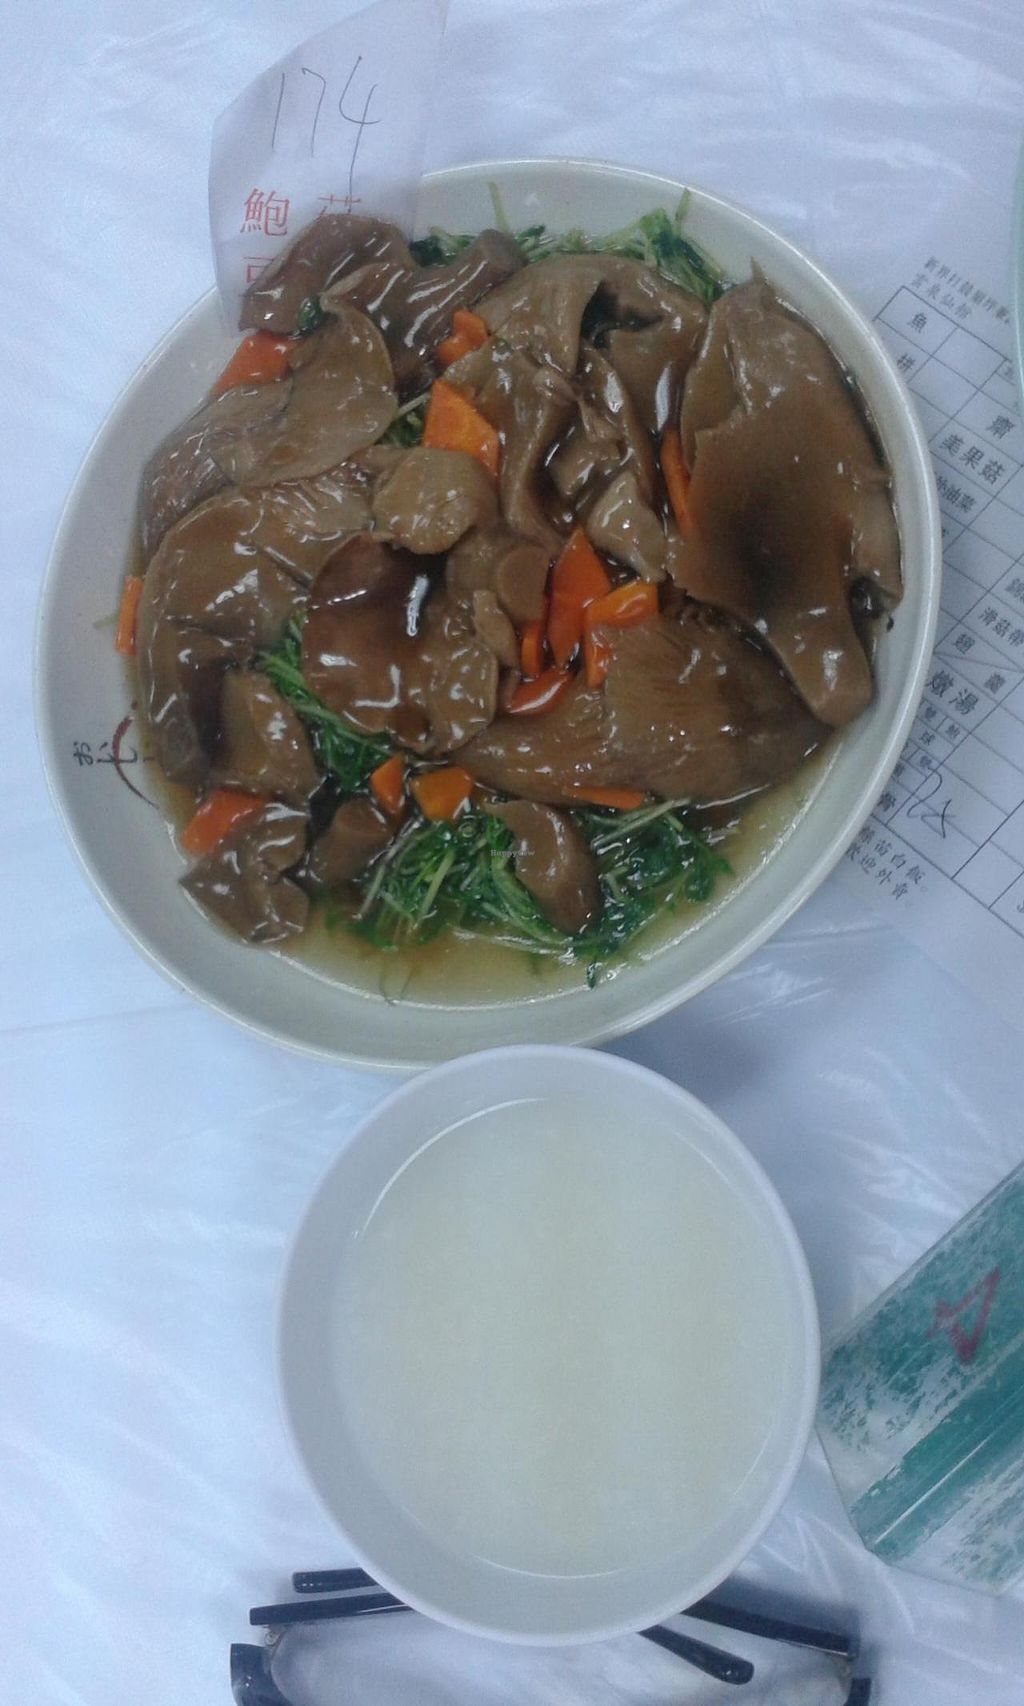 """Photo of Wun Chuen Vegetarian Centre  by <a href=""""/members/profile/Stevie"""">Stevie</a> <br/>Mushroom with carrot and green stuff <br/> May 25, 2015  - <a href='/contact/abuse/image/51564/103330'>Report</a>"""